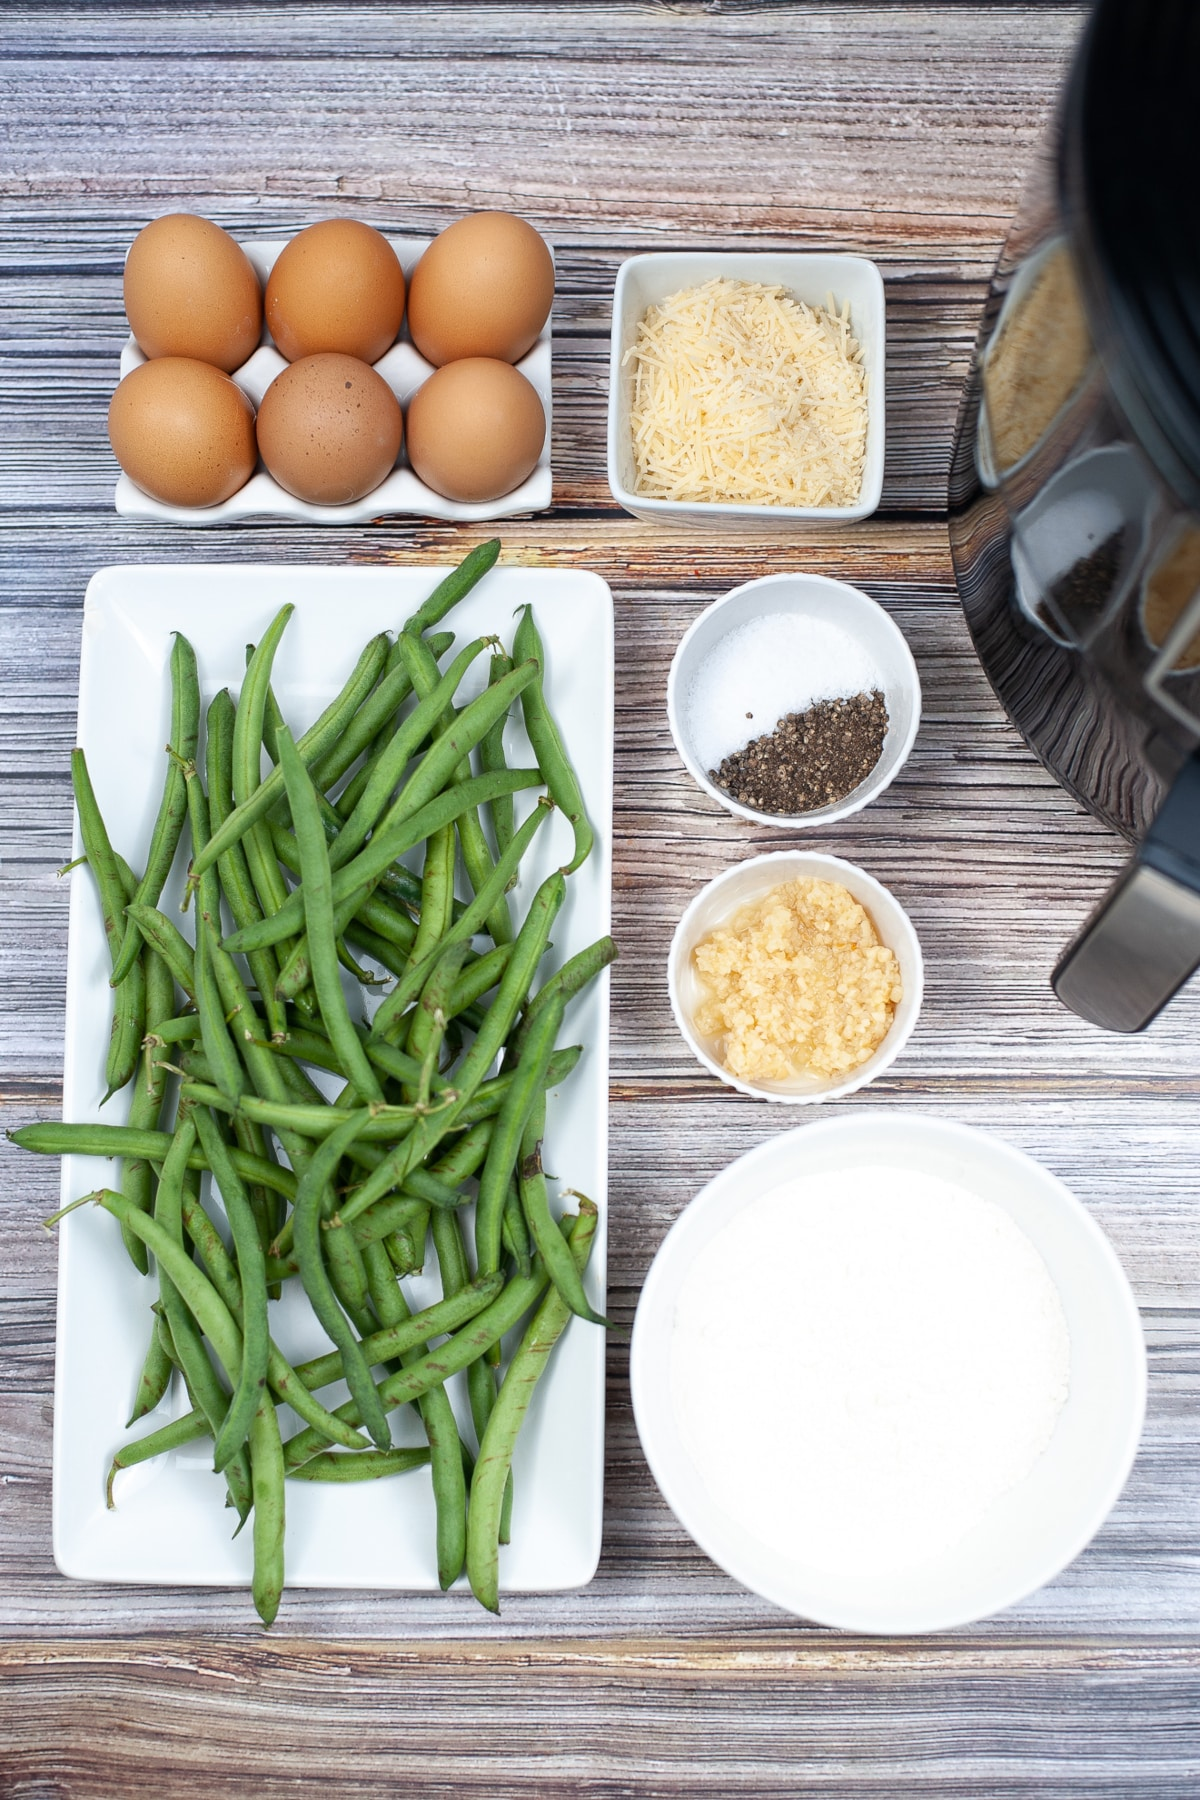 Ingredients for air fryer green beans